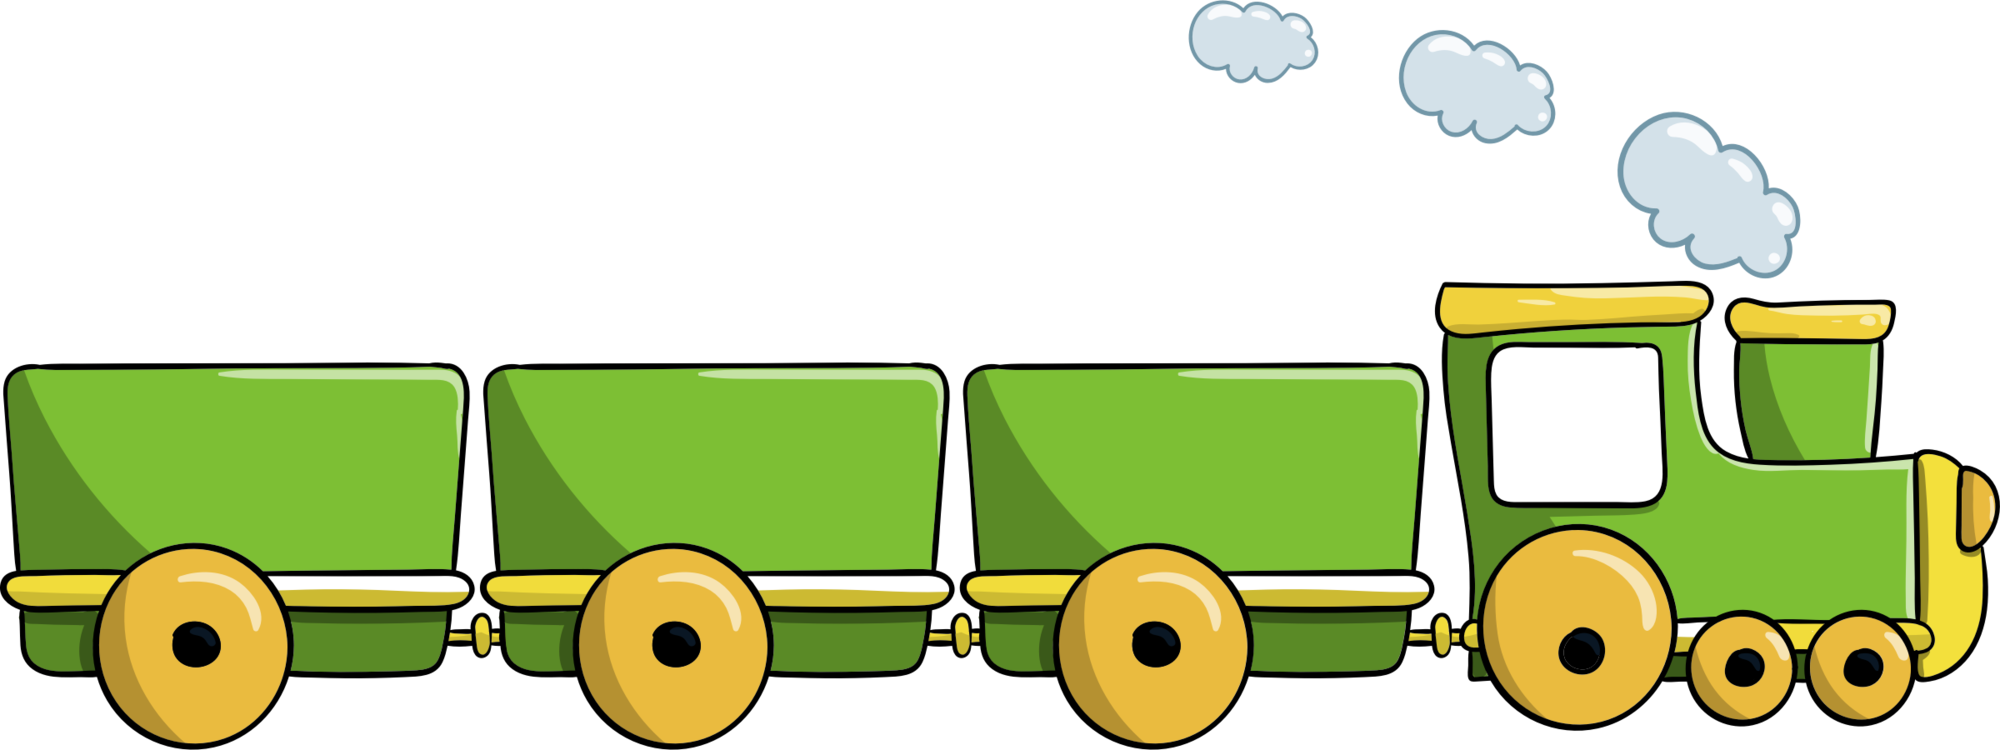 Green train. Engine clipart transparent